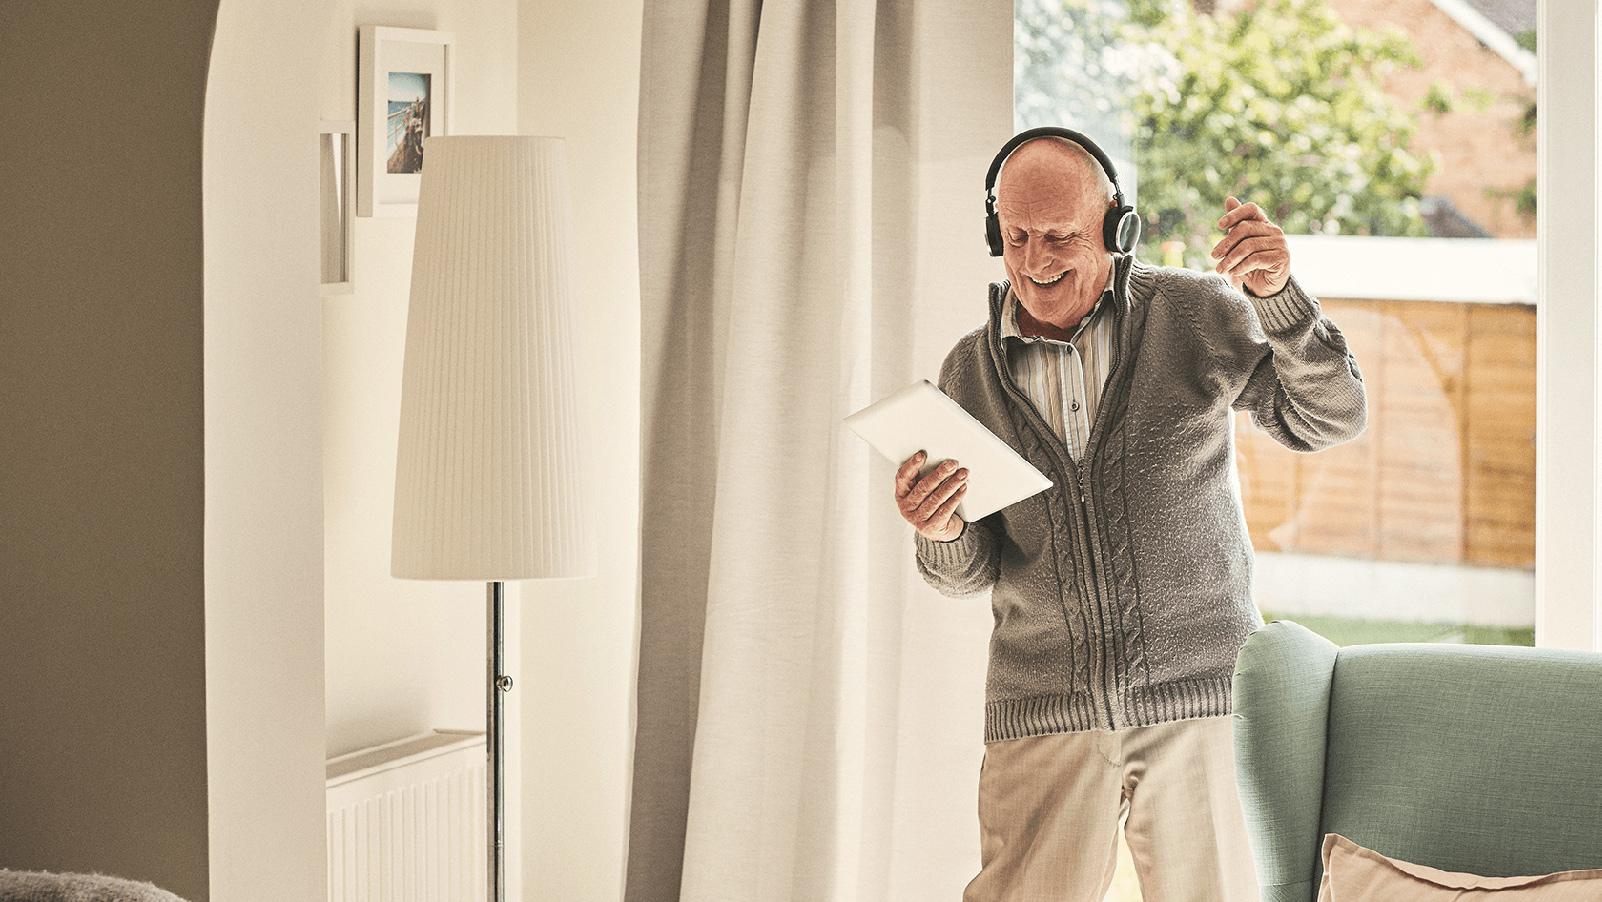 Man holding tablet and wearing headphones dancing in living room.